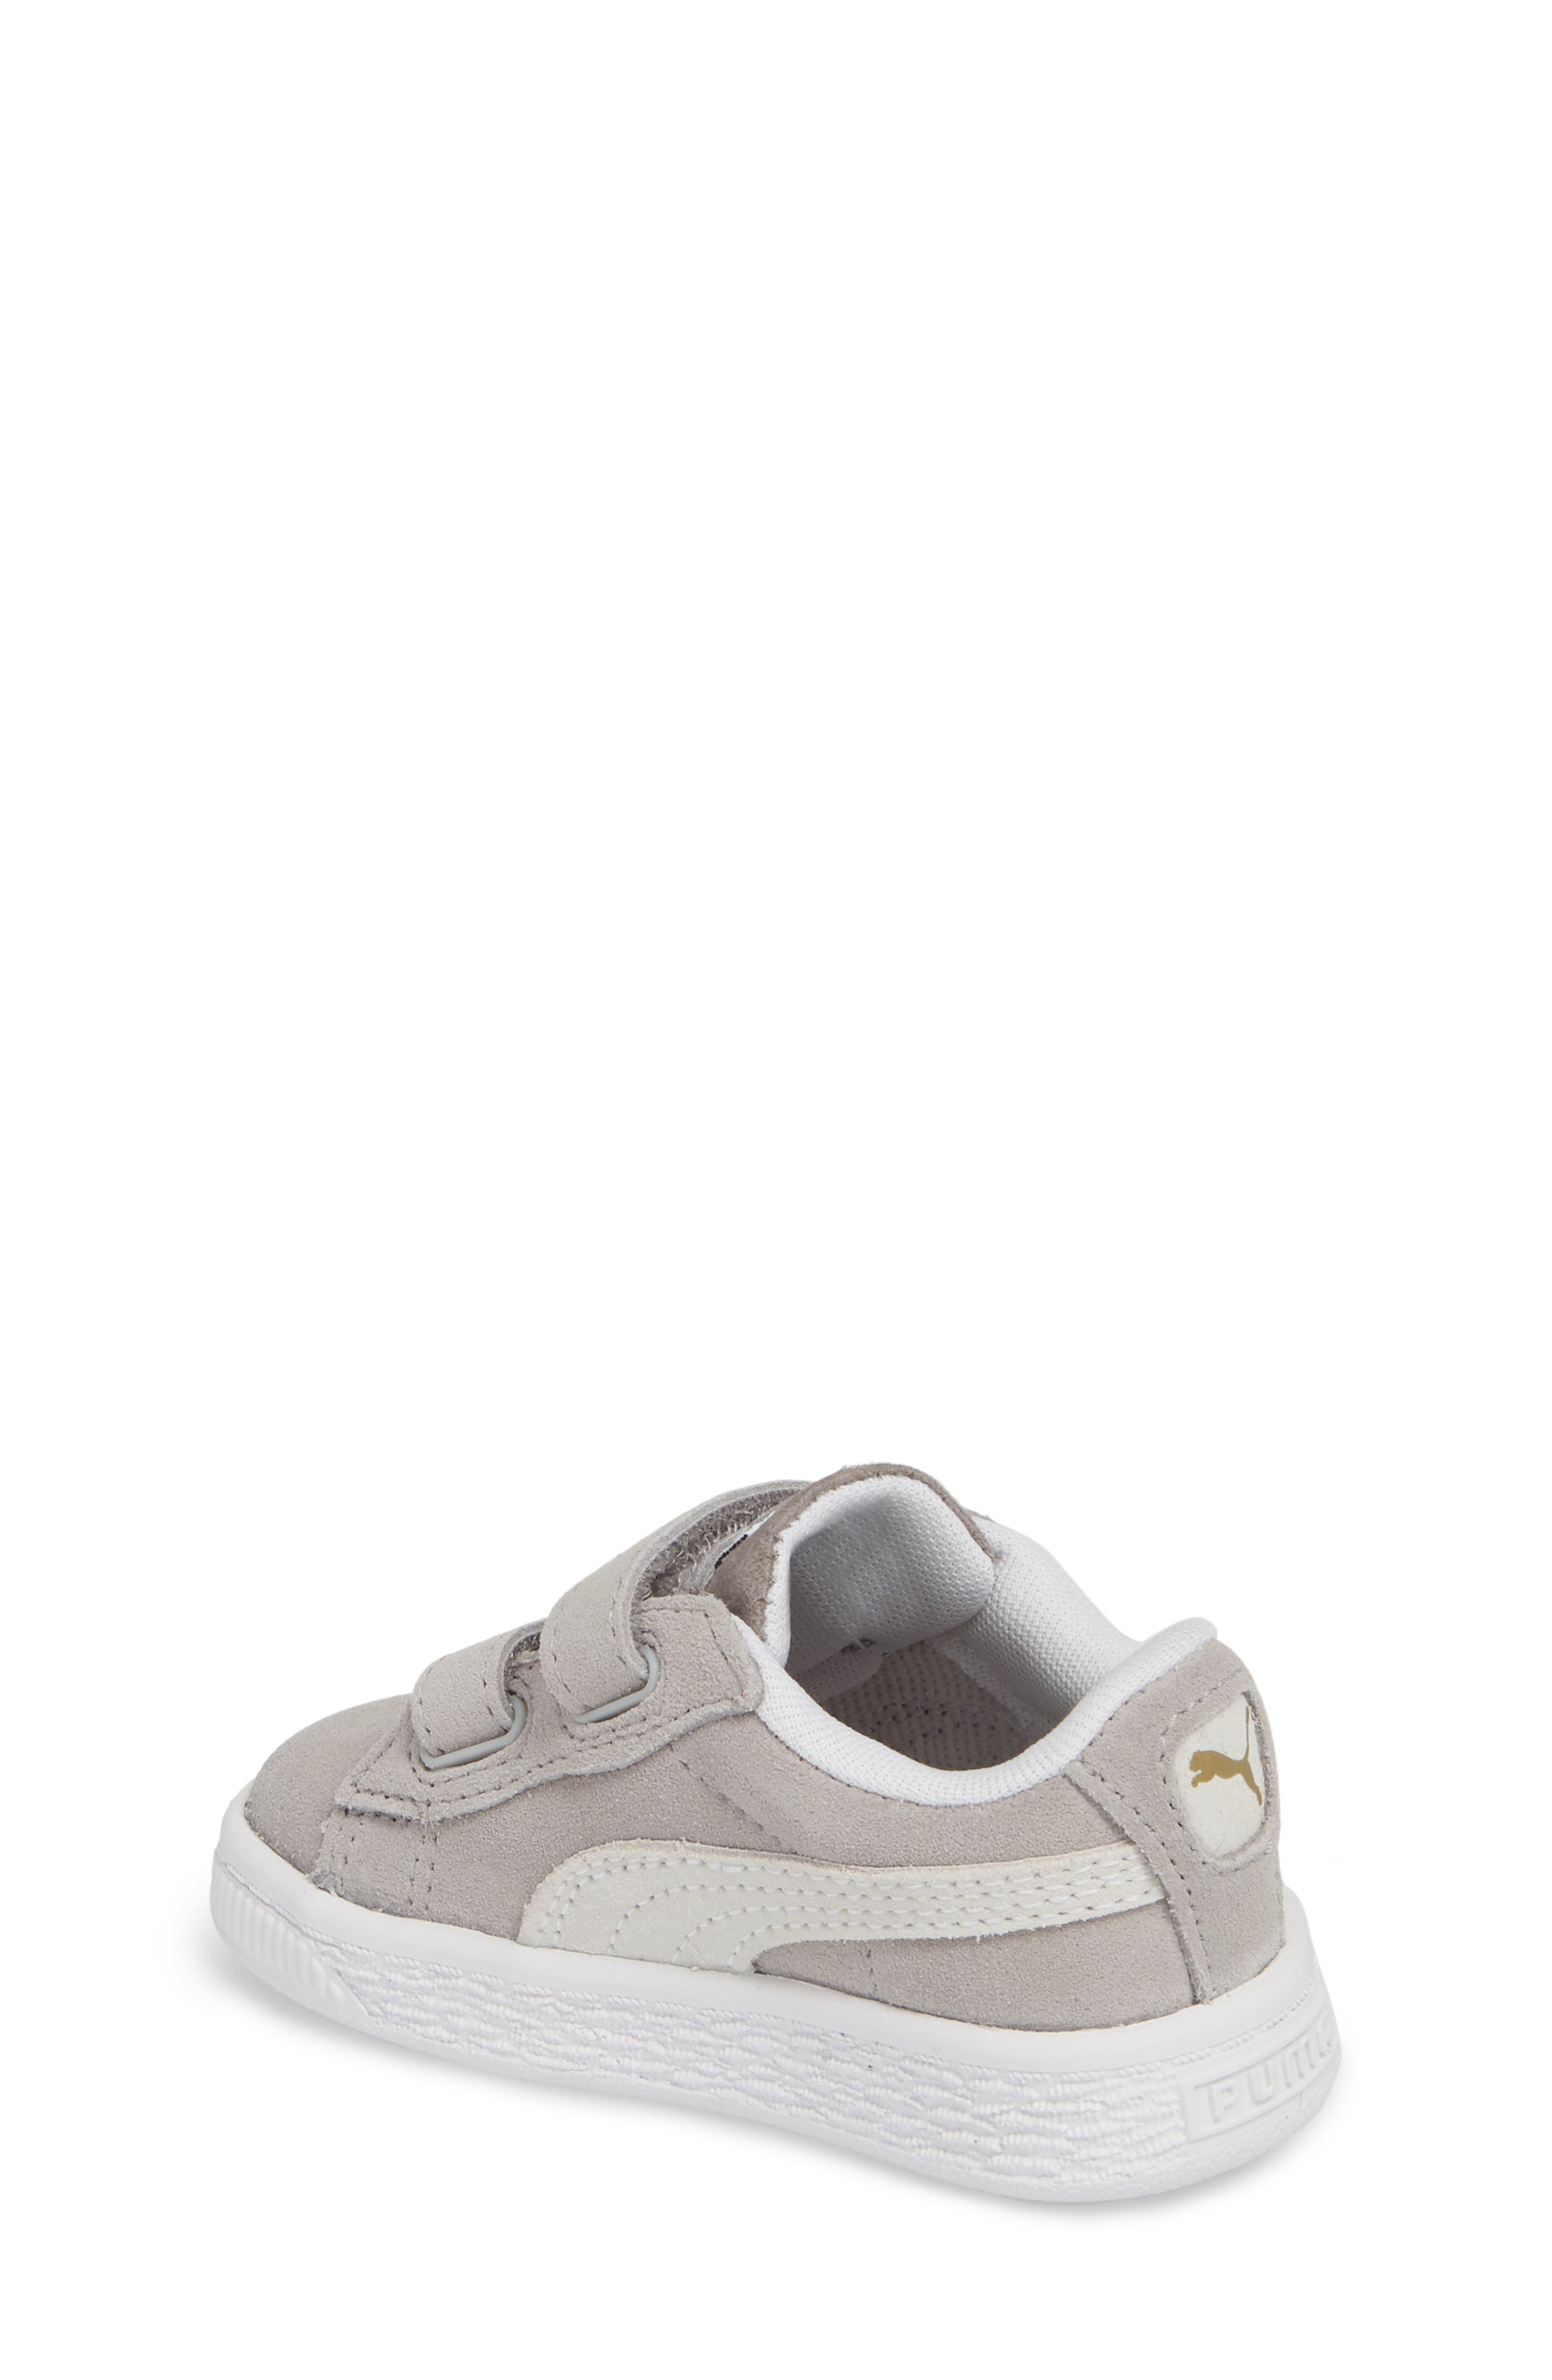 Suede Classic Sneaker,                             Alternate thumbnail 2, color,                             250